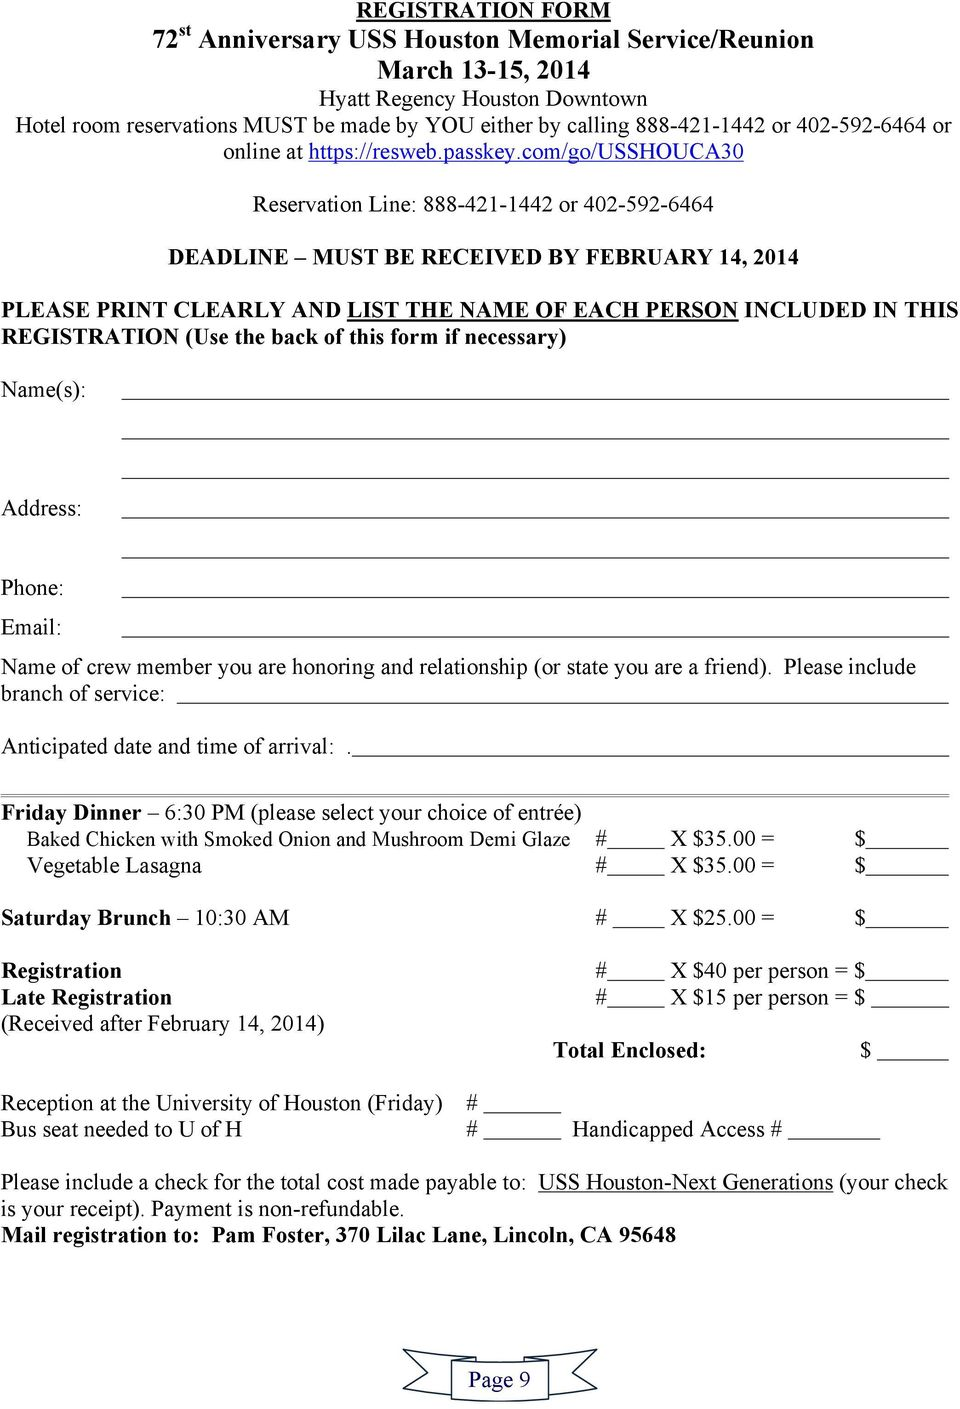 com/go/usshouca30 Reservation Line: 888-421-1442 or 402-592-6464 DEADLINE MUST BE RECEIVED BY FEBRUARY 14, 2014 PLEASE PRINT CLEARLY AND LIST THE NAME OF EACH PERSON INCLUDED IN THIS REGISTRATION